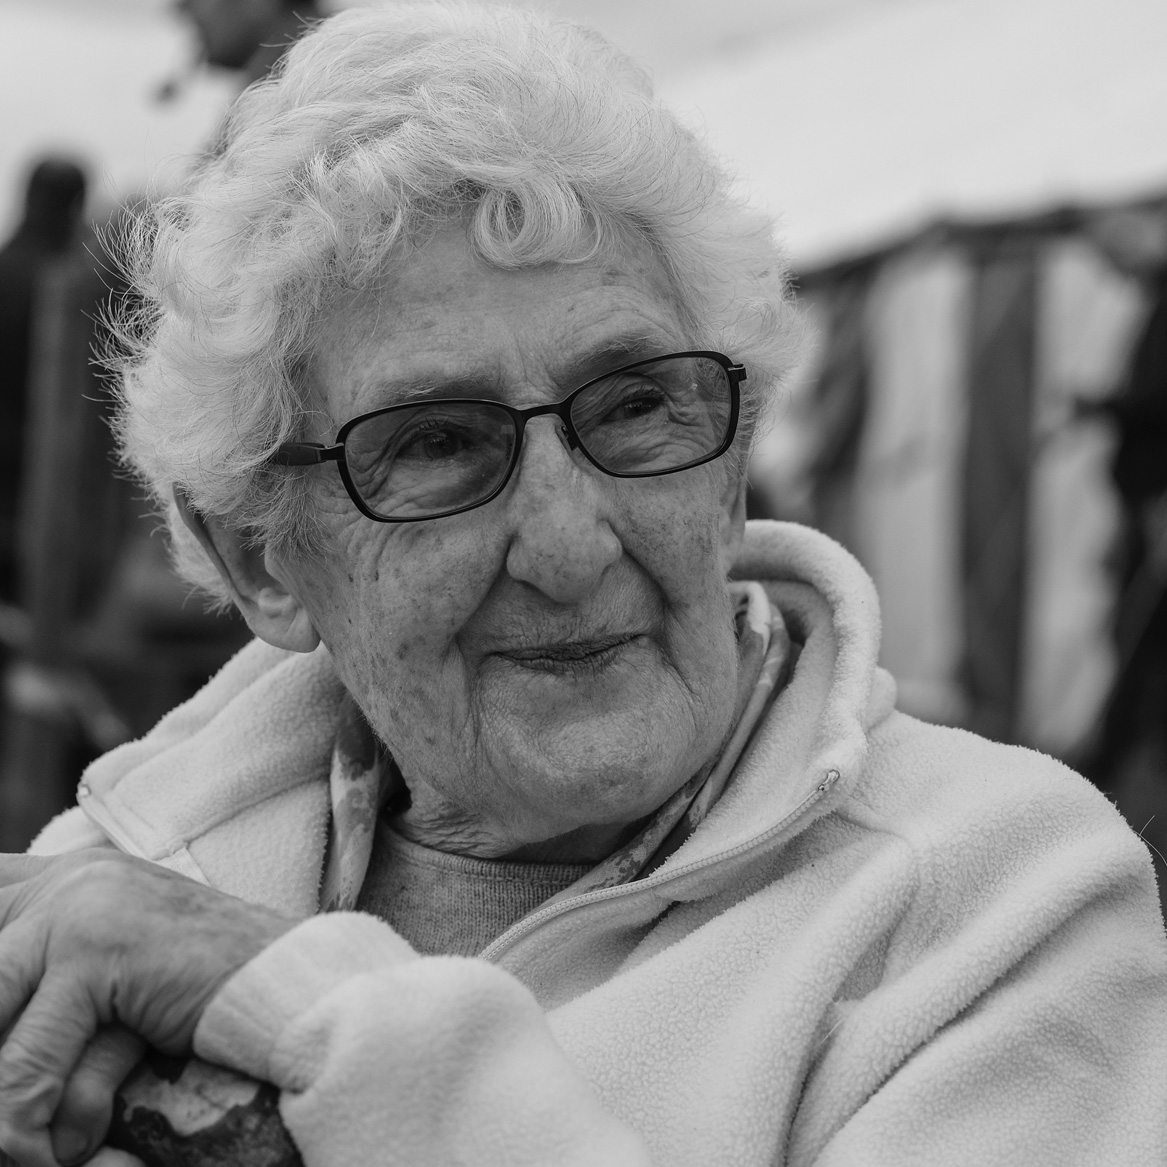 Monchrome photo of the author, looking to her left. She has white curly hair and one curl has fallen forward over her forehead. She is wearing a cosy fleece-type jacket and black framed glasses. She has a faintly impish smile.